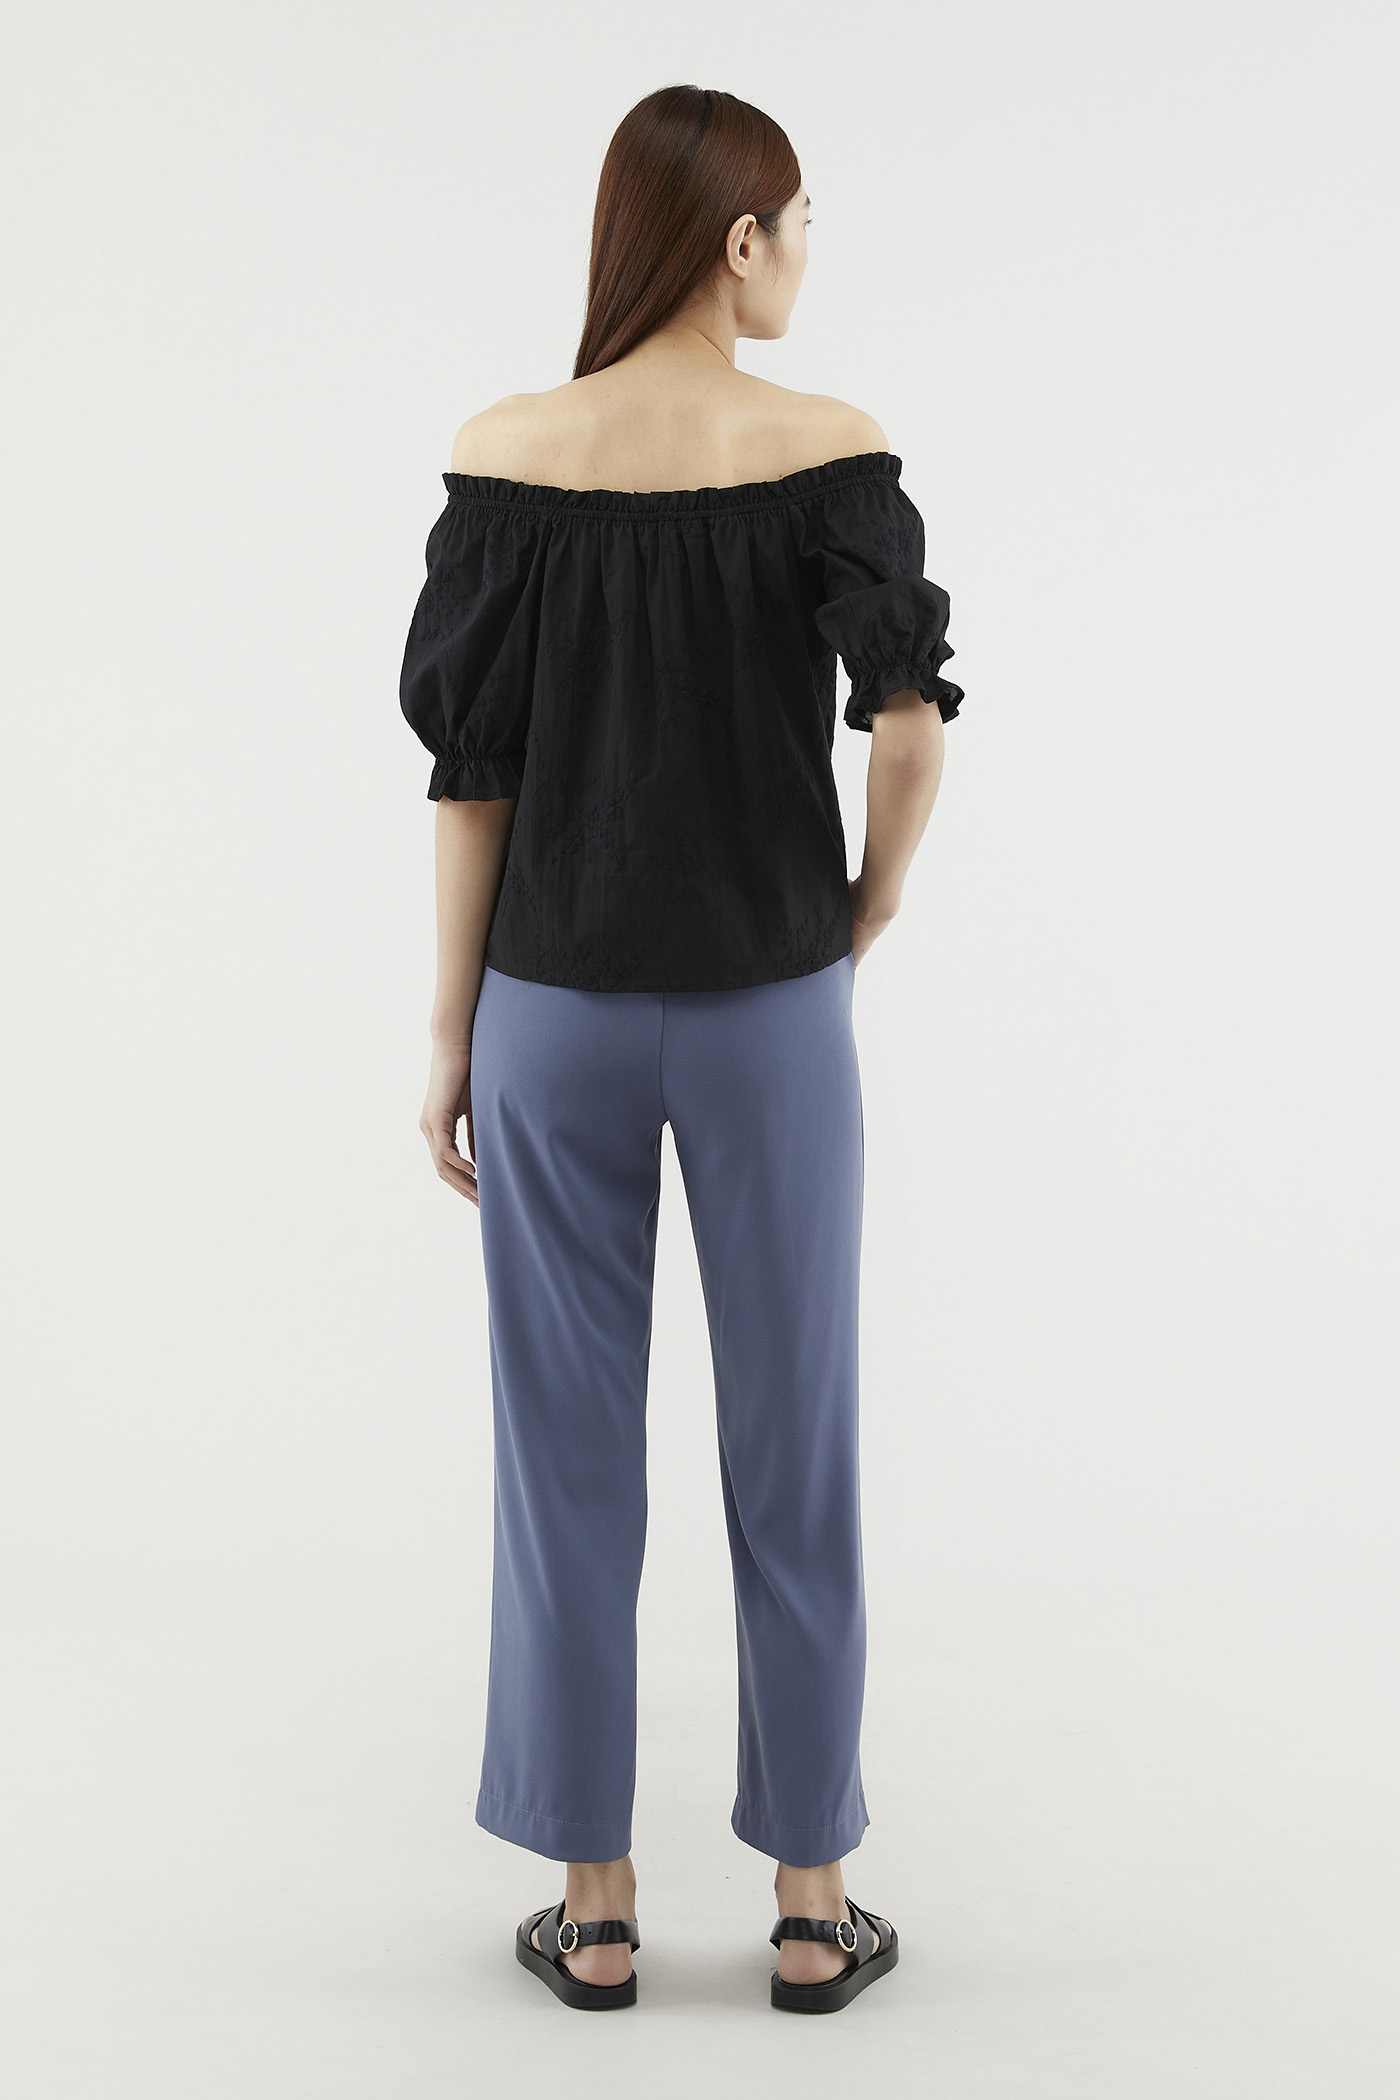 Meredy Embroidered Blouse